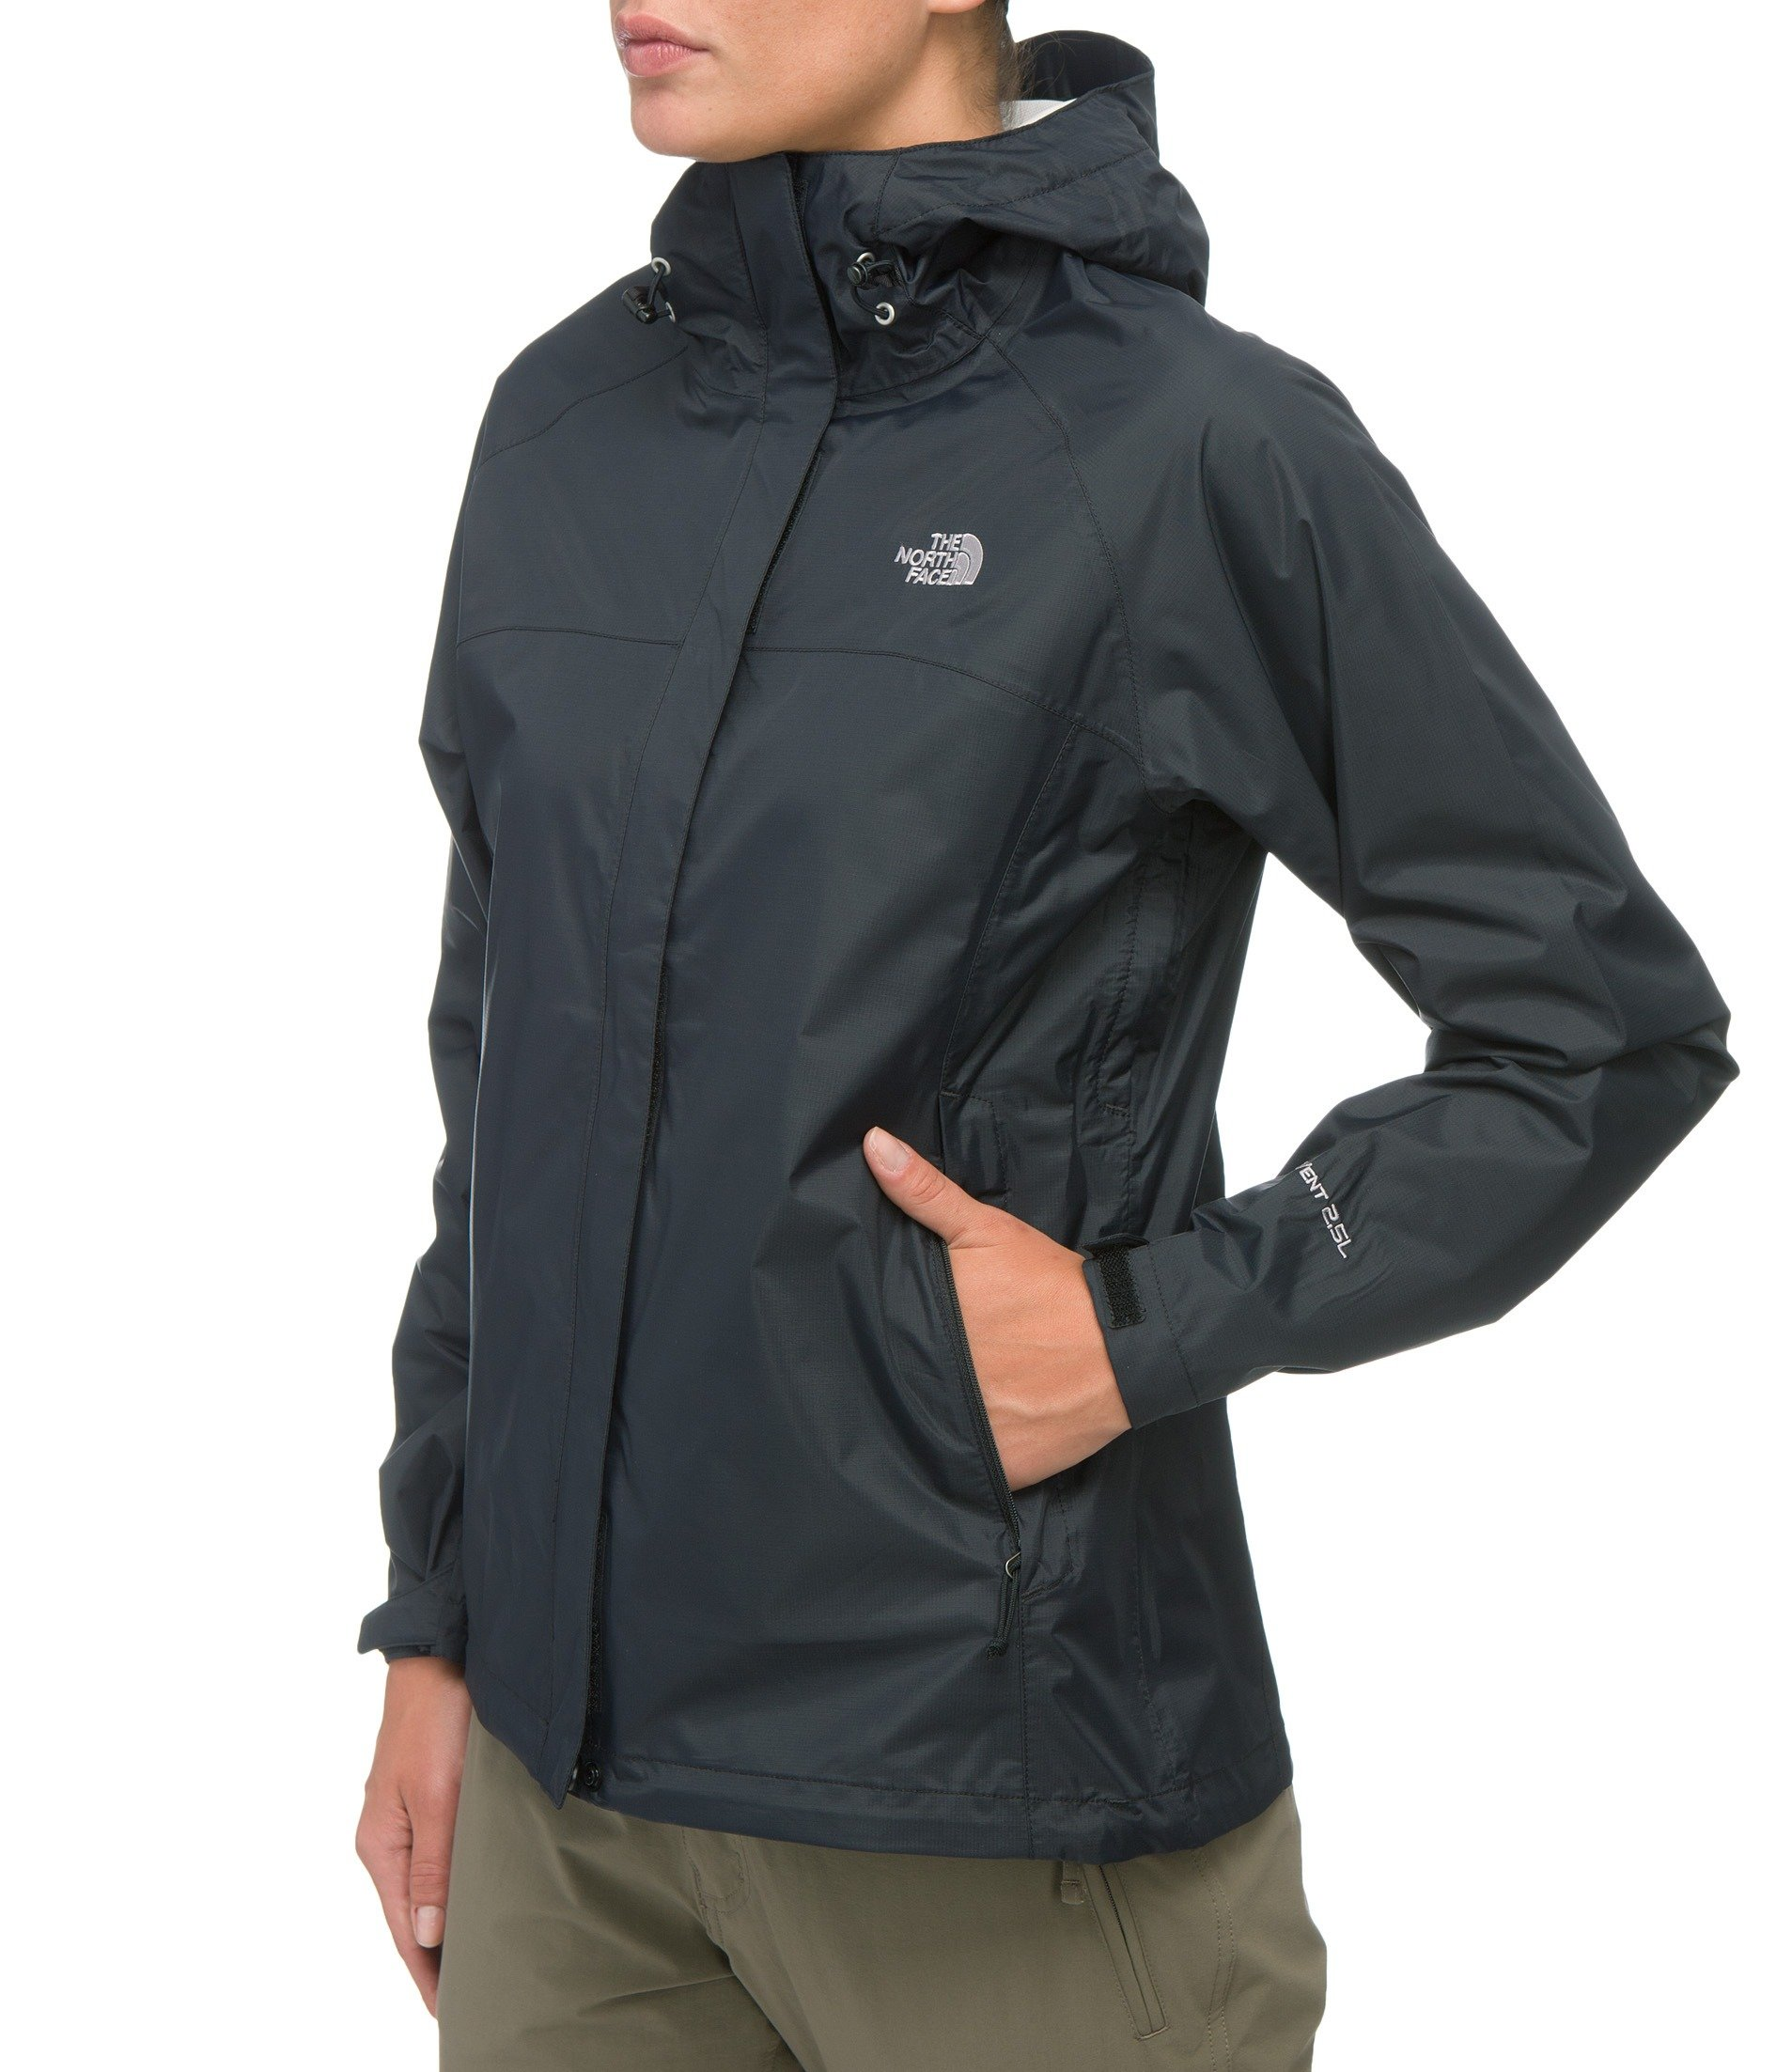 North face galaxy jacket woman fra The north face på billigsport24